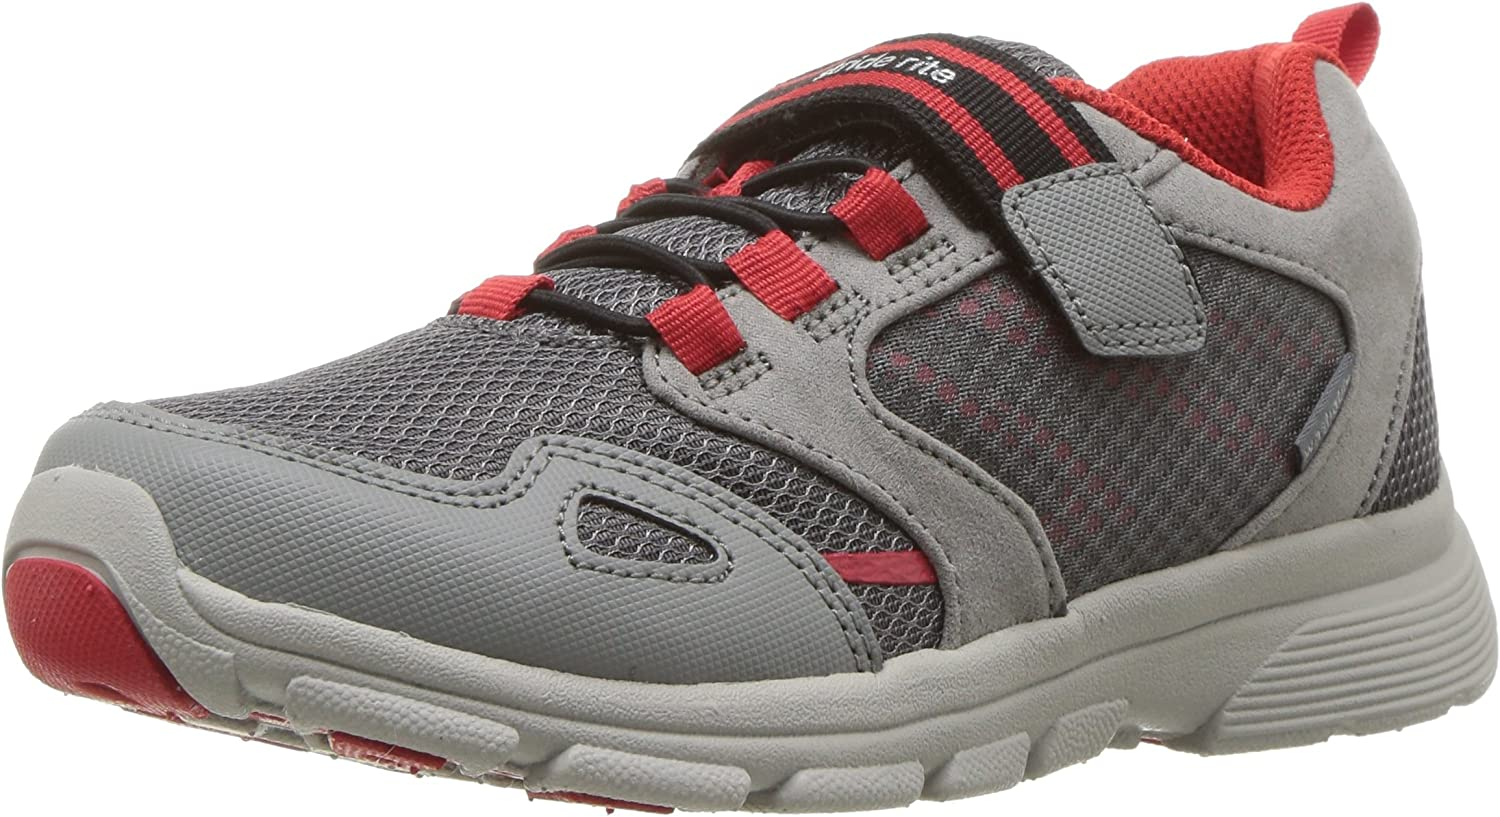 Stride Brand Cheap Sale Venue Rite Baby-Boy's safety Made 2 Grey Play Sneaker Taylor Athletic